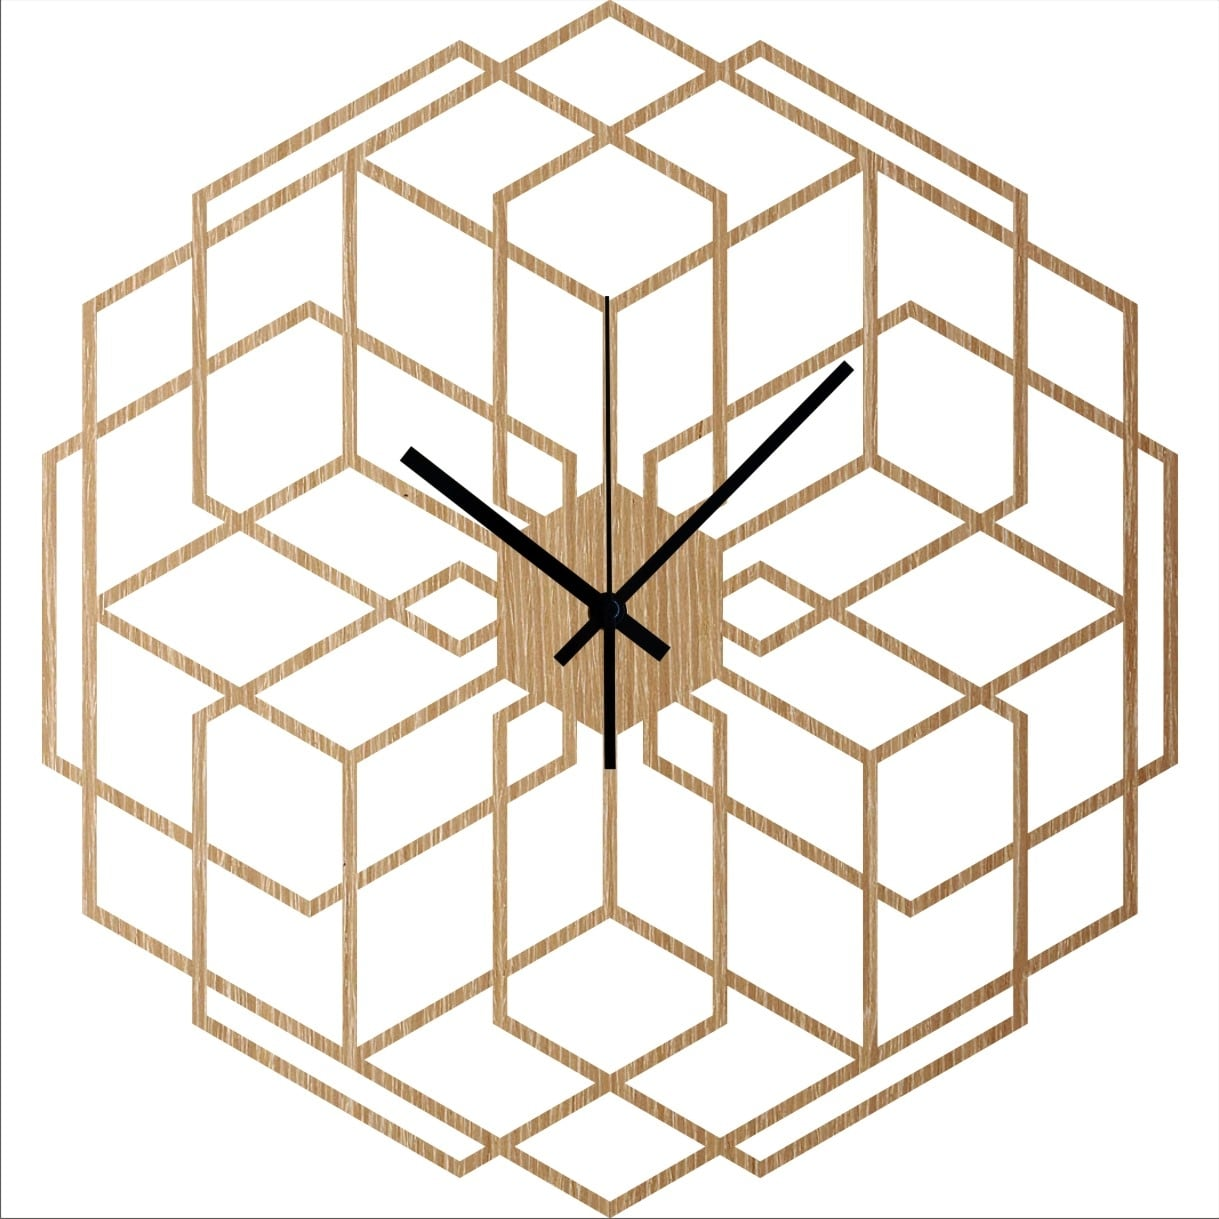 Hexaflower wood wall clock for a trendy interior